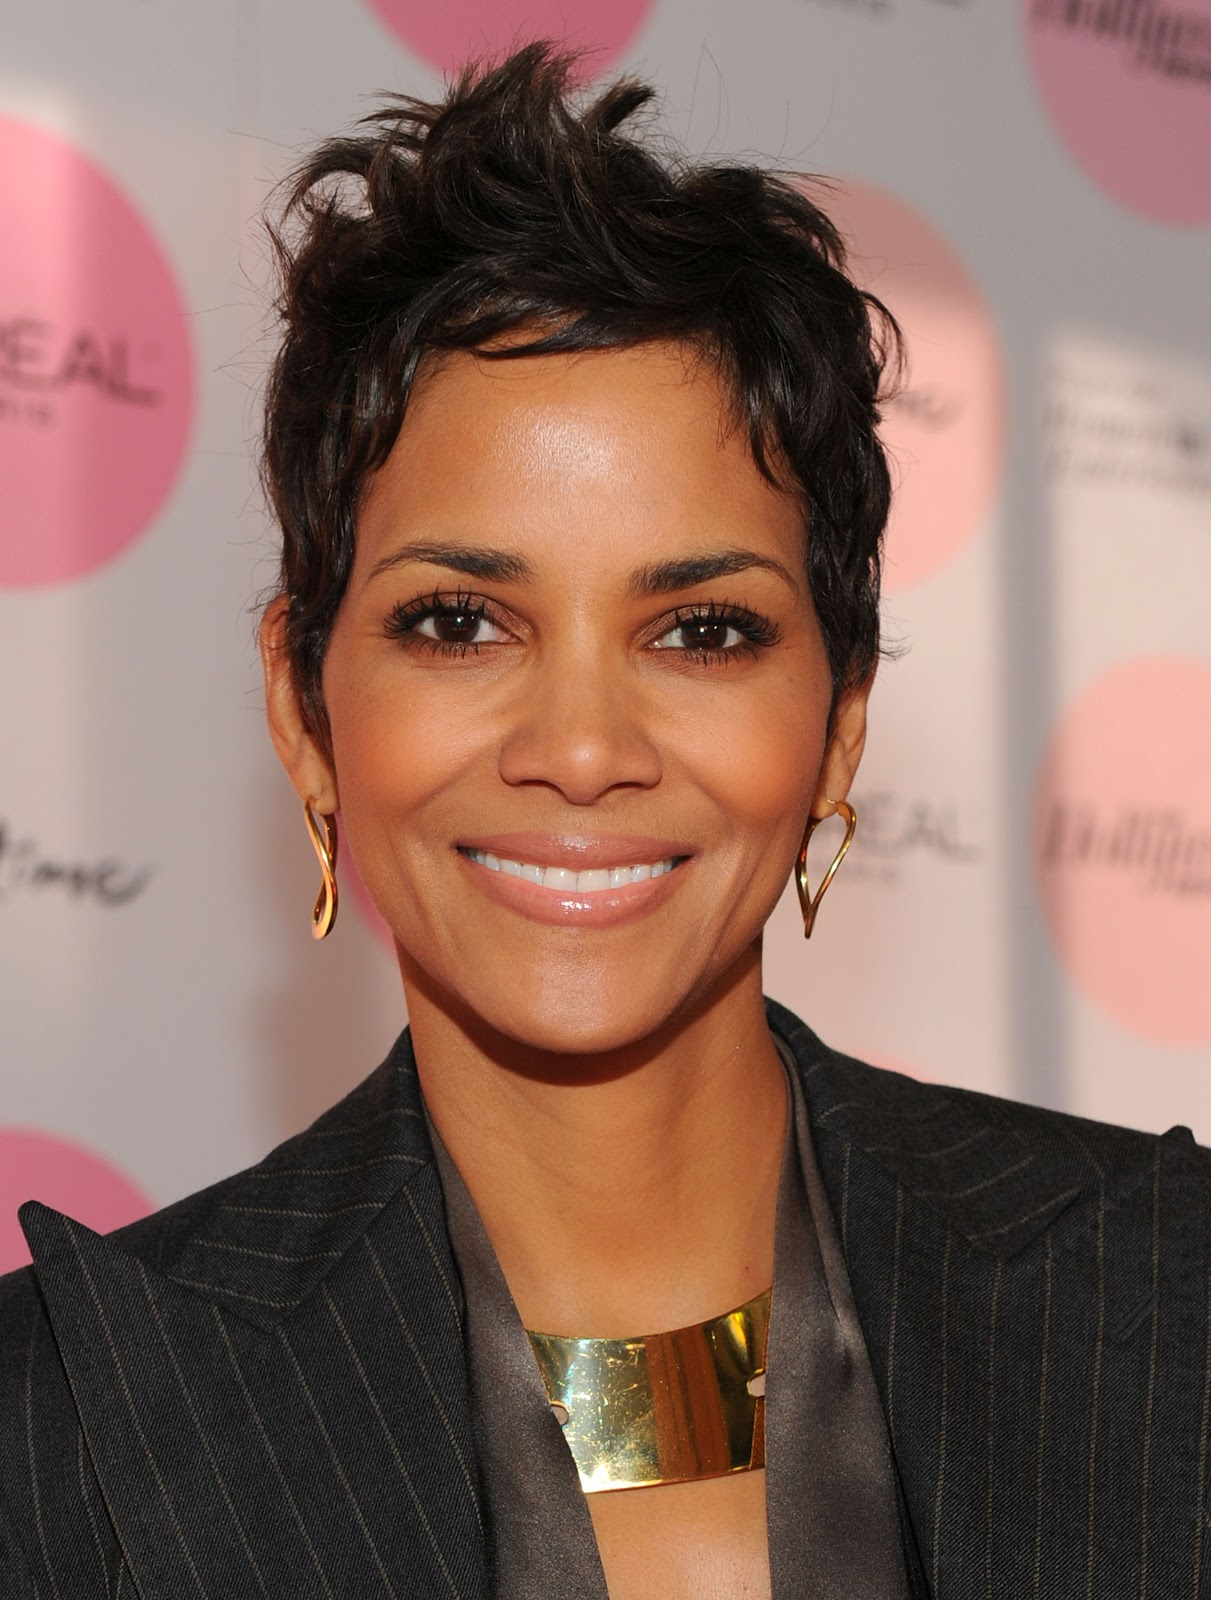 http://2.bp.blogspot.com/-jUeKp3inpJs/UTjhNnRY0nI/AAAAAAAA6-M/PcR43BYIRvQ/s1600/Halle-Berry-halle-berry-hairstyles-miss-usa-world-model-acting-films-movies-actress-pictures-oscar+(1).jpg